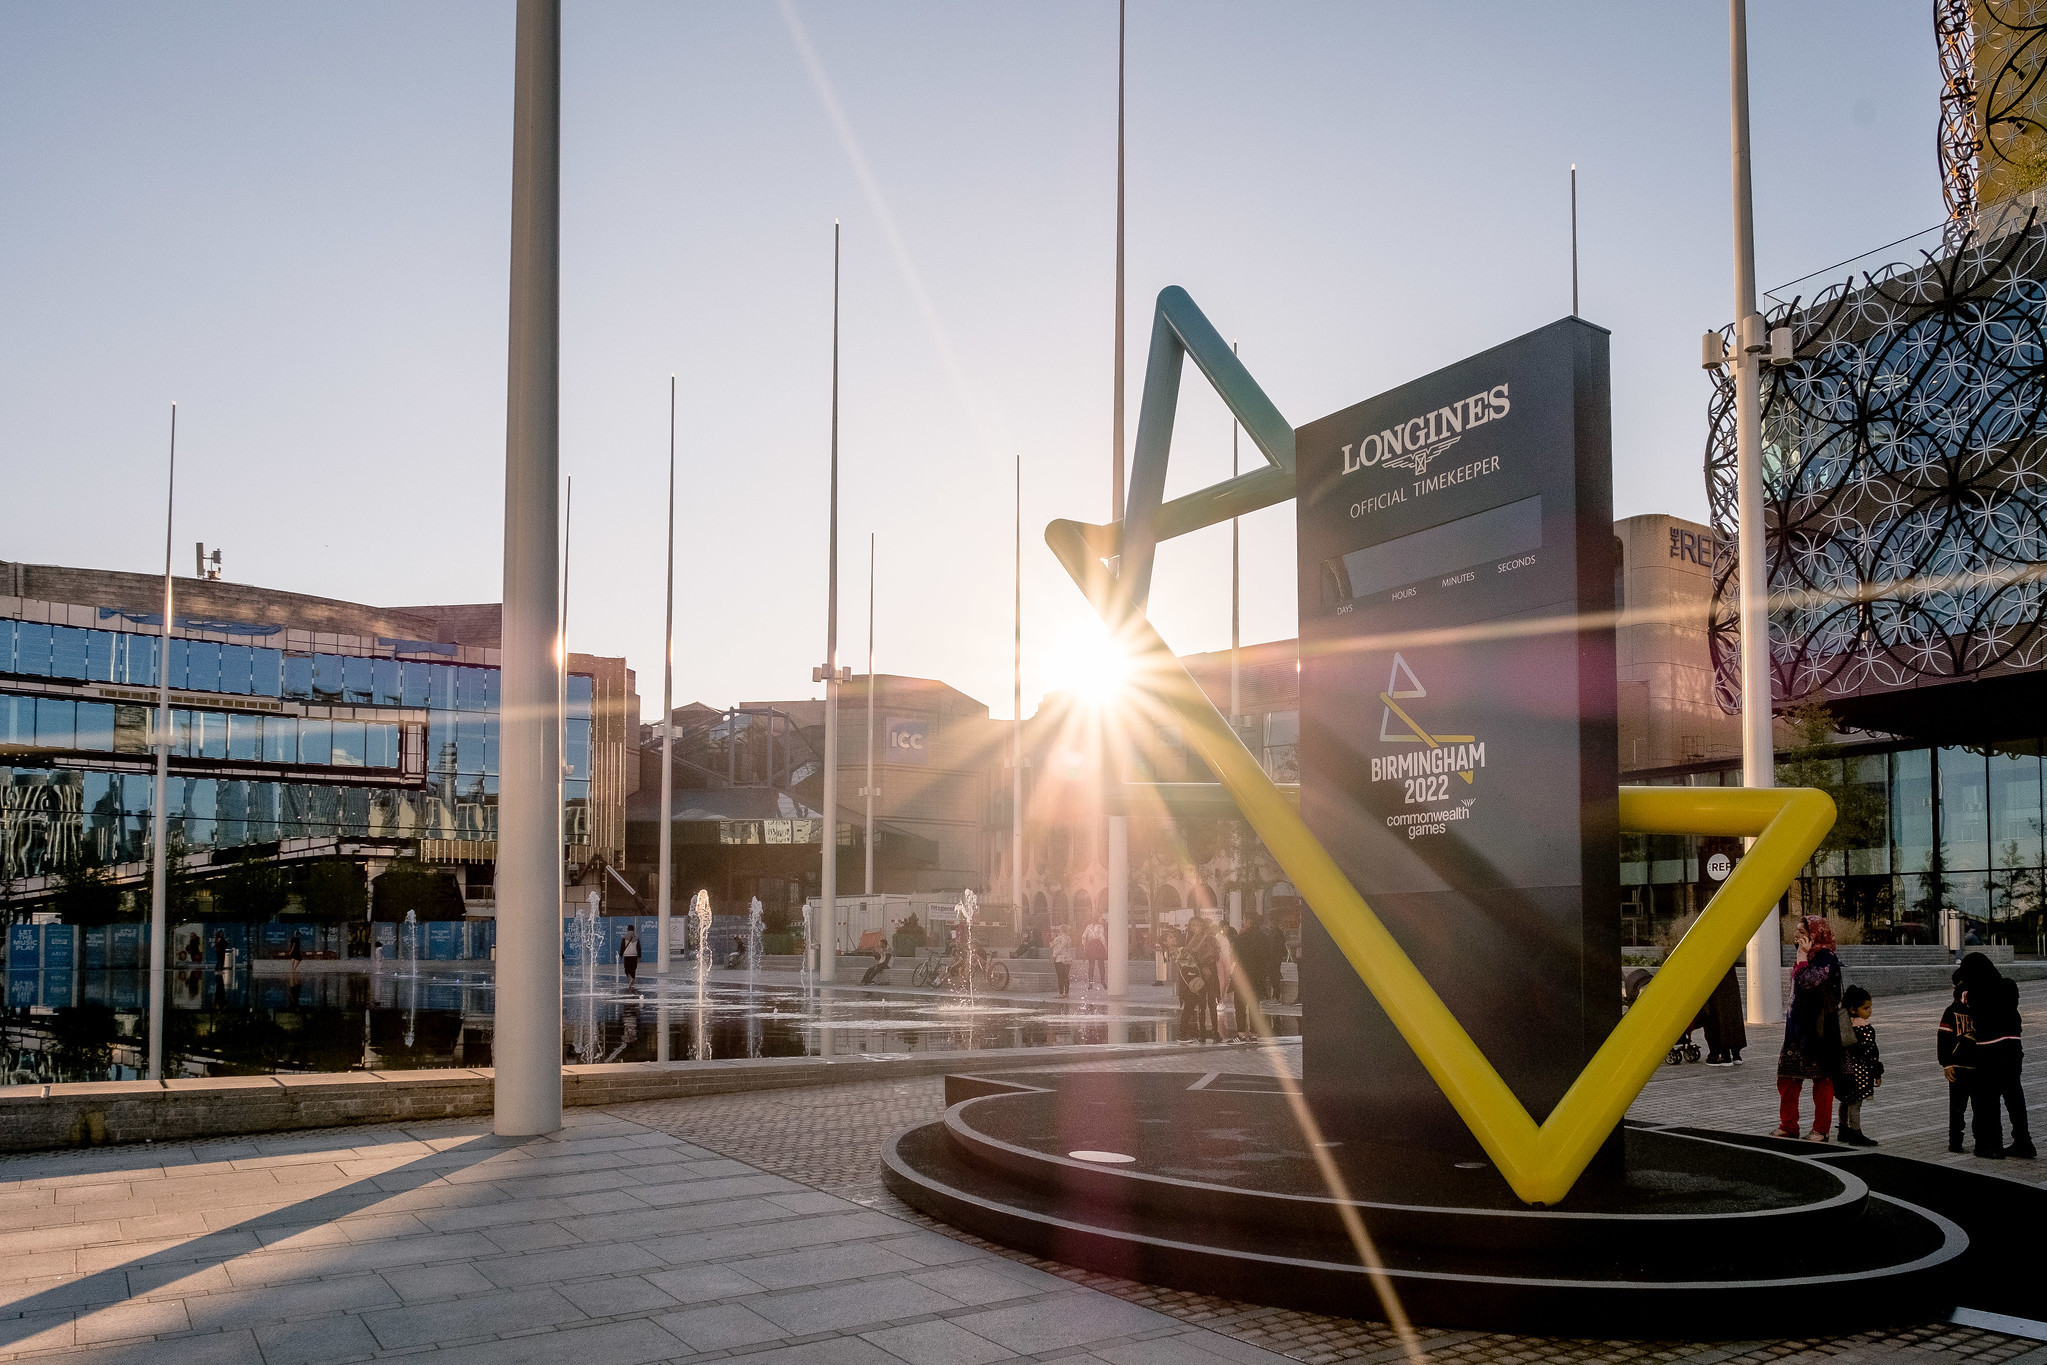 Top-quality hotels will await those visiting Birmingham for the 2022 Commonwealth Games ©Birmingham City Council